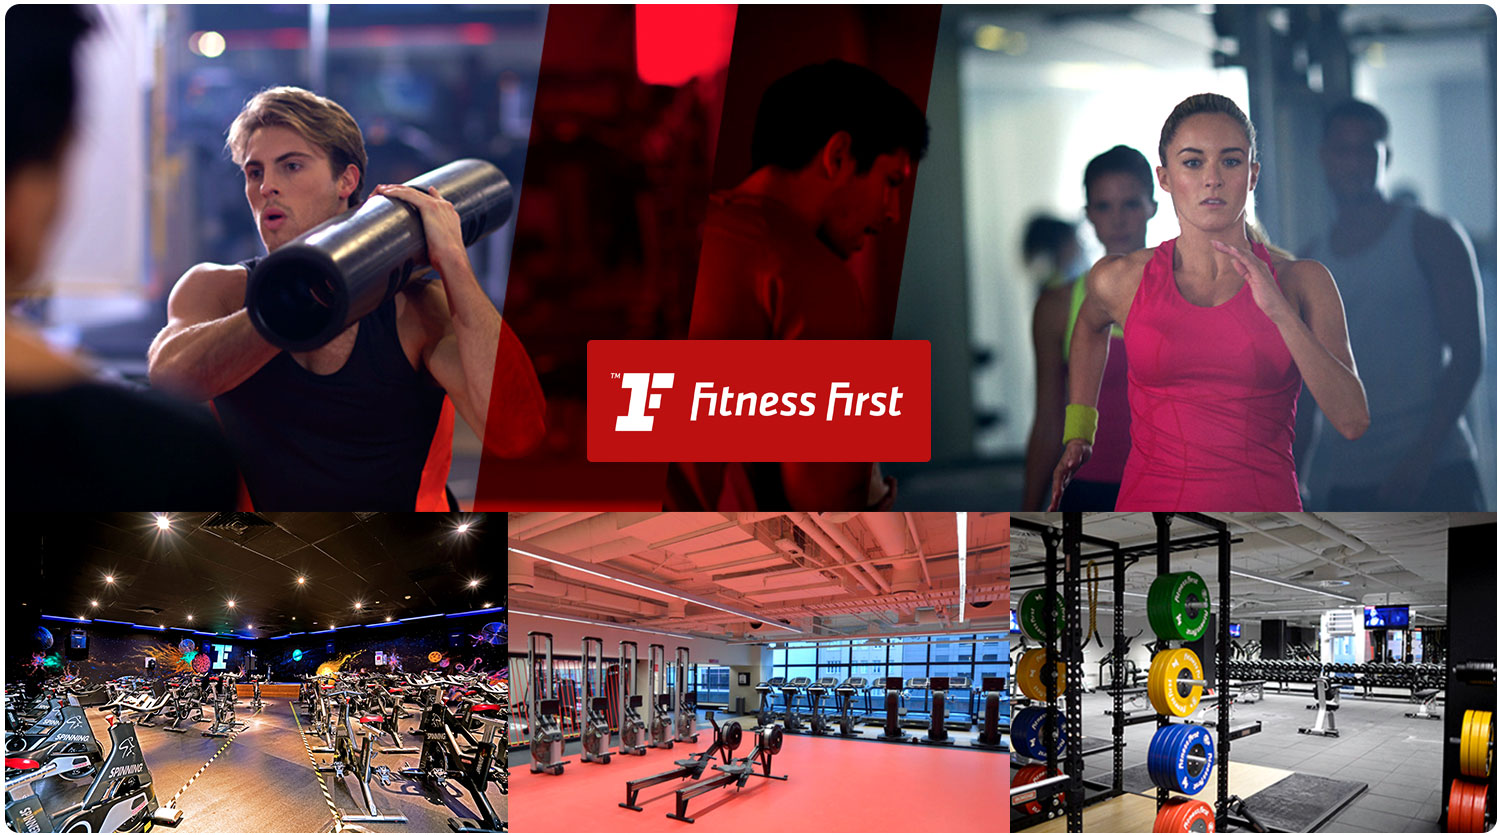 Start your Fitness Journey with Fitness First with only $14.95 for 14 days at Fitness First Mermaid Waters QLD. Experience our first class gym and freestyle classes inc. Zumba, Pilates, Yoga, HIIT, Les Mills and more. Take the first step with Fitness First Mermaid Waters QLD.